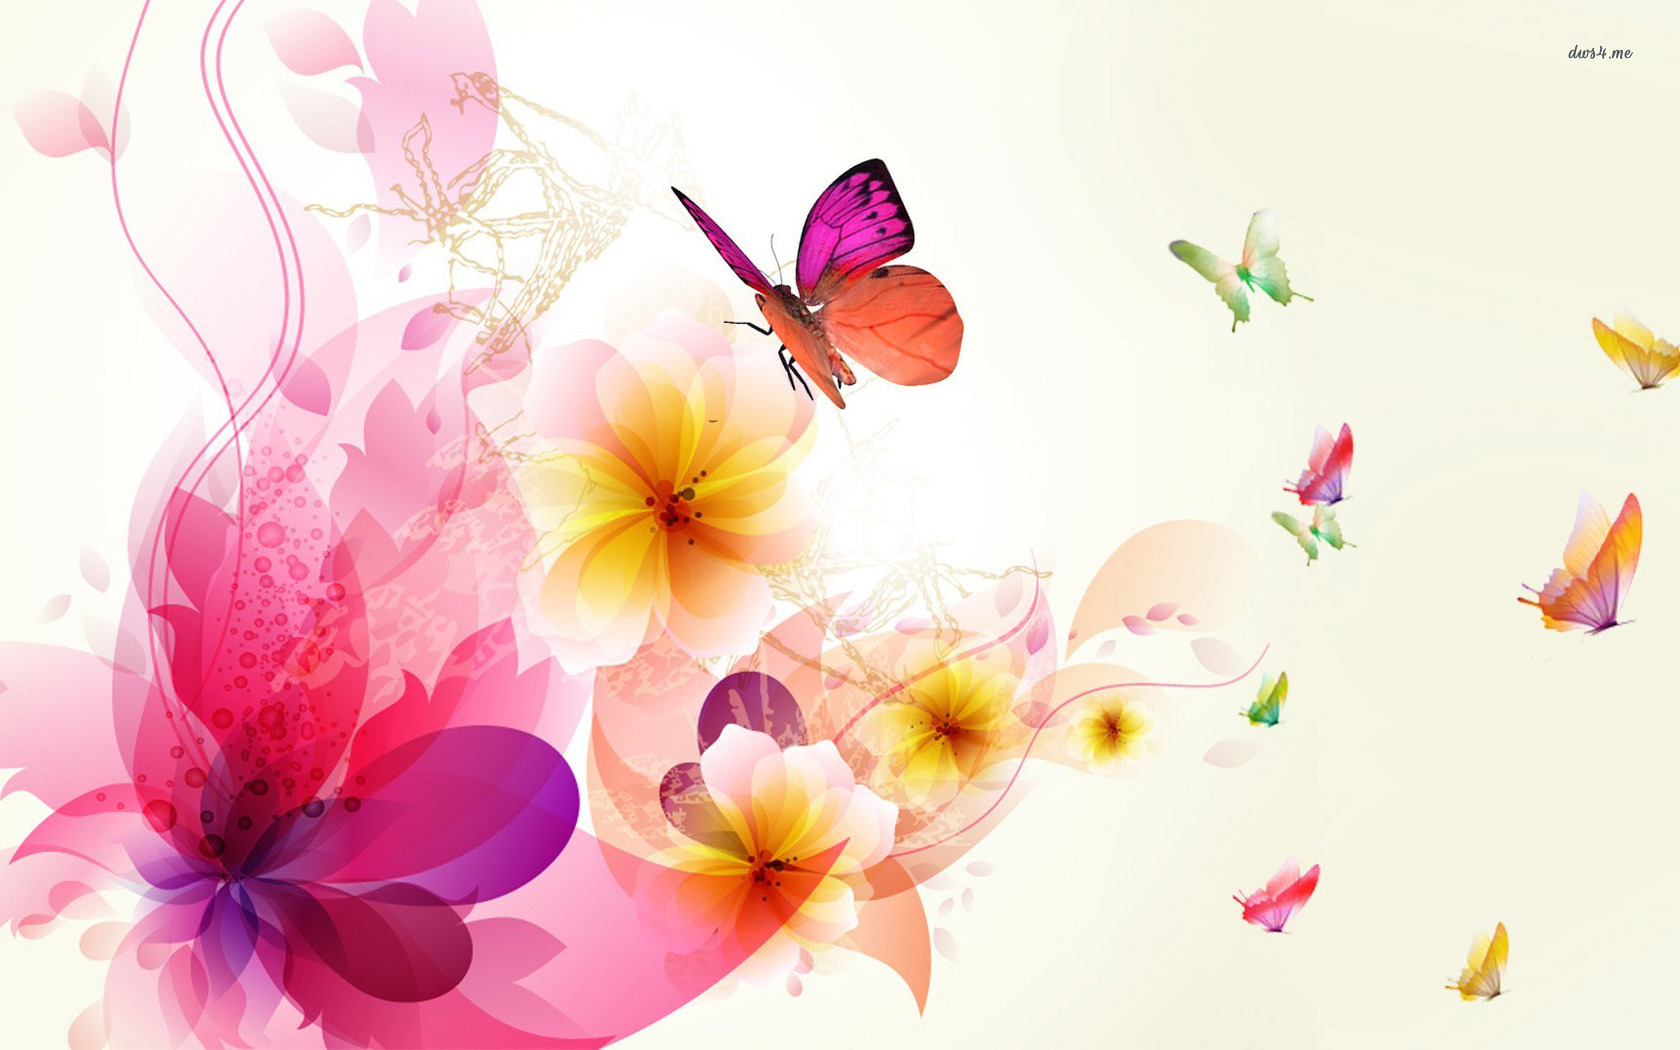 1680x1050   312 78 KB   jpg 89 Colorful Butterfly Wallpapers 1680x1050